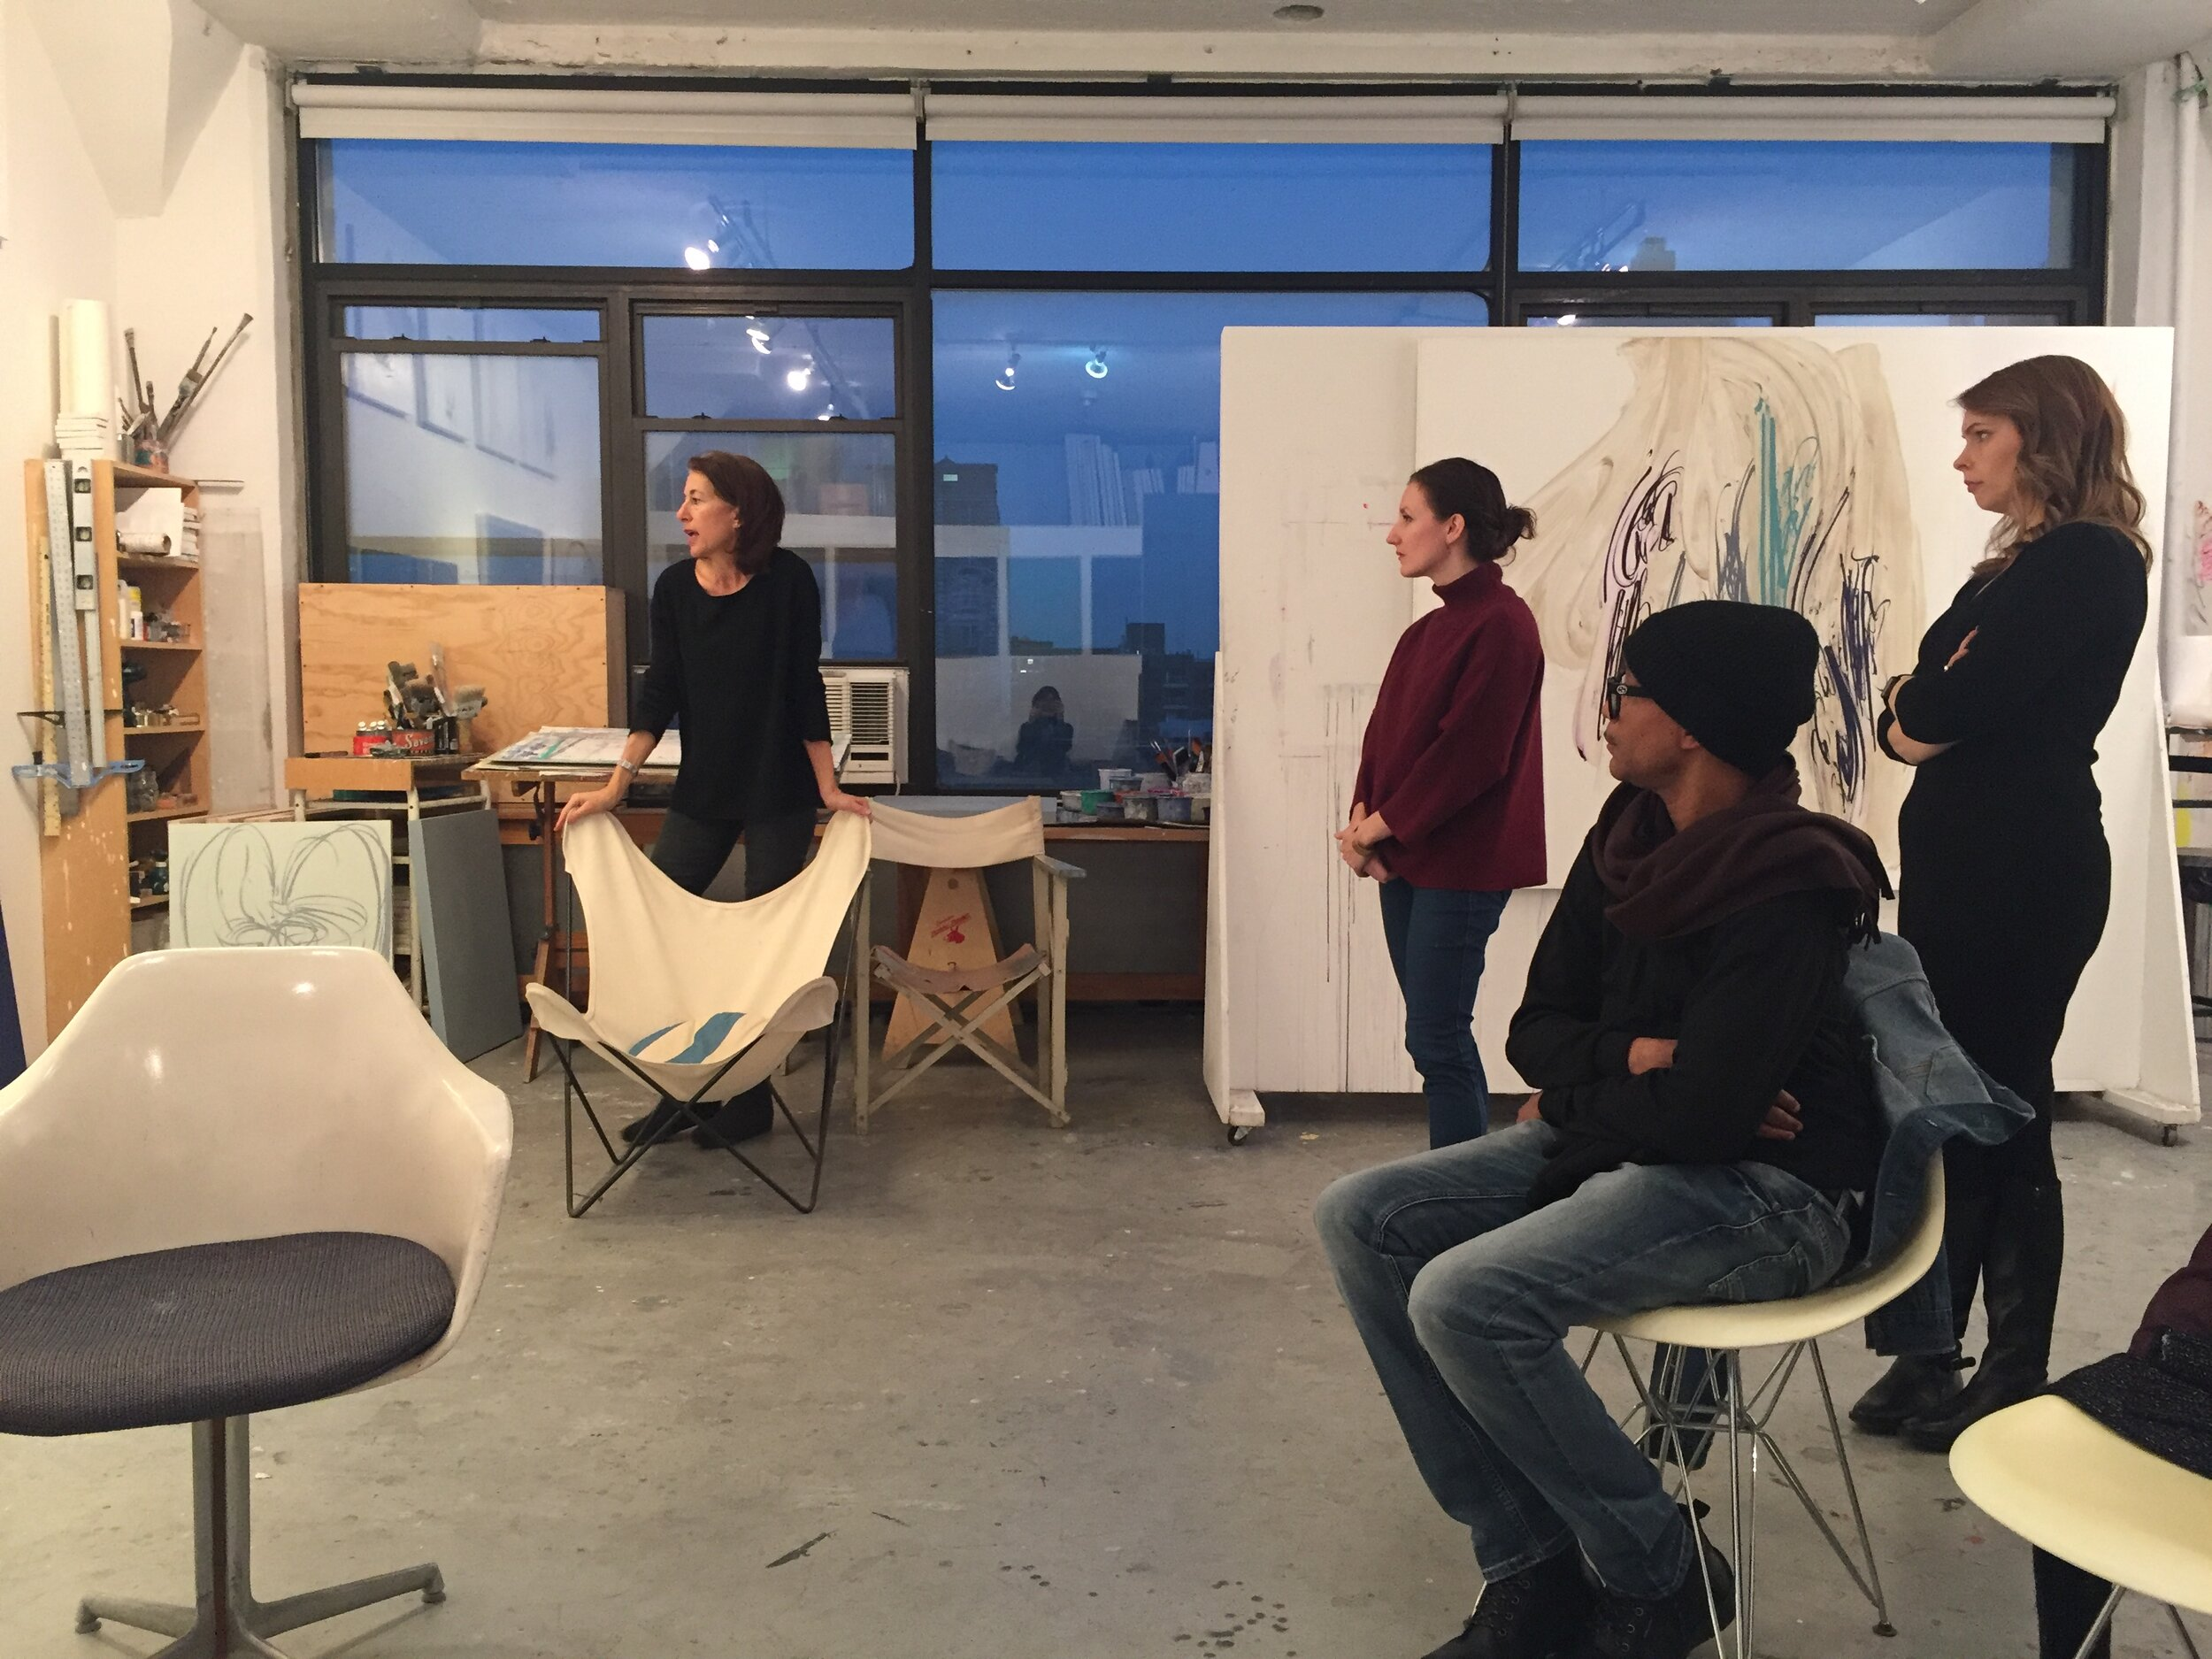 Students and artist Jill Moser in her studio in Long Island City, NY. January 2019